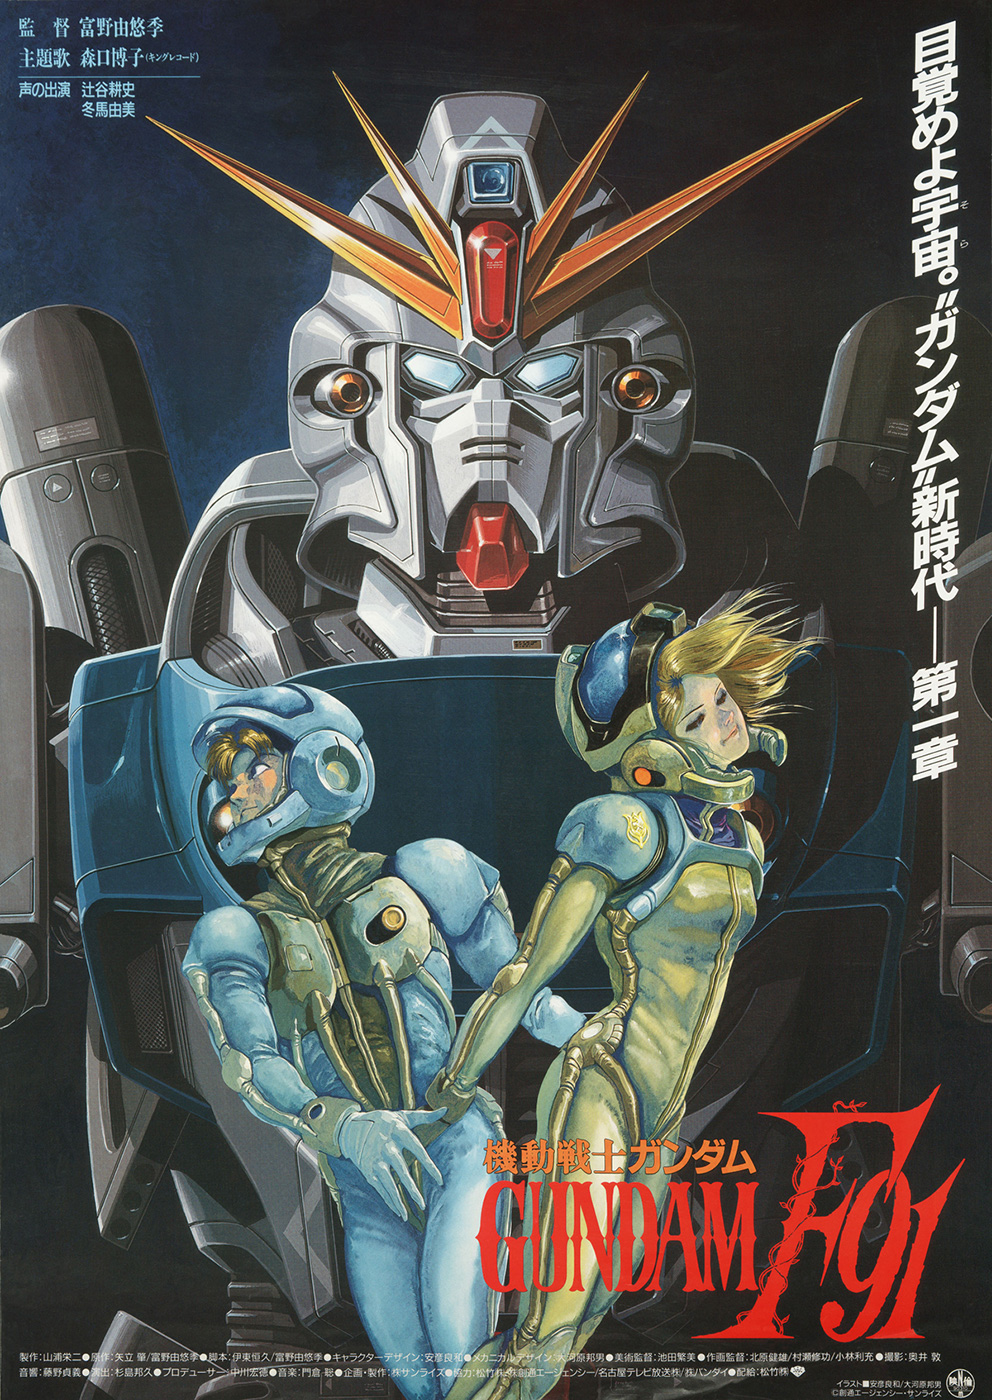 Poster for Mobile Suit Gundam F91 (Intro & giveaways)